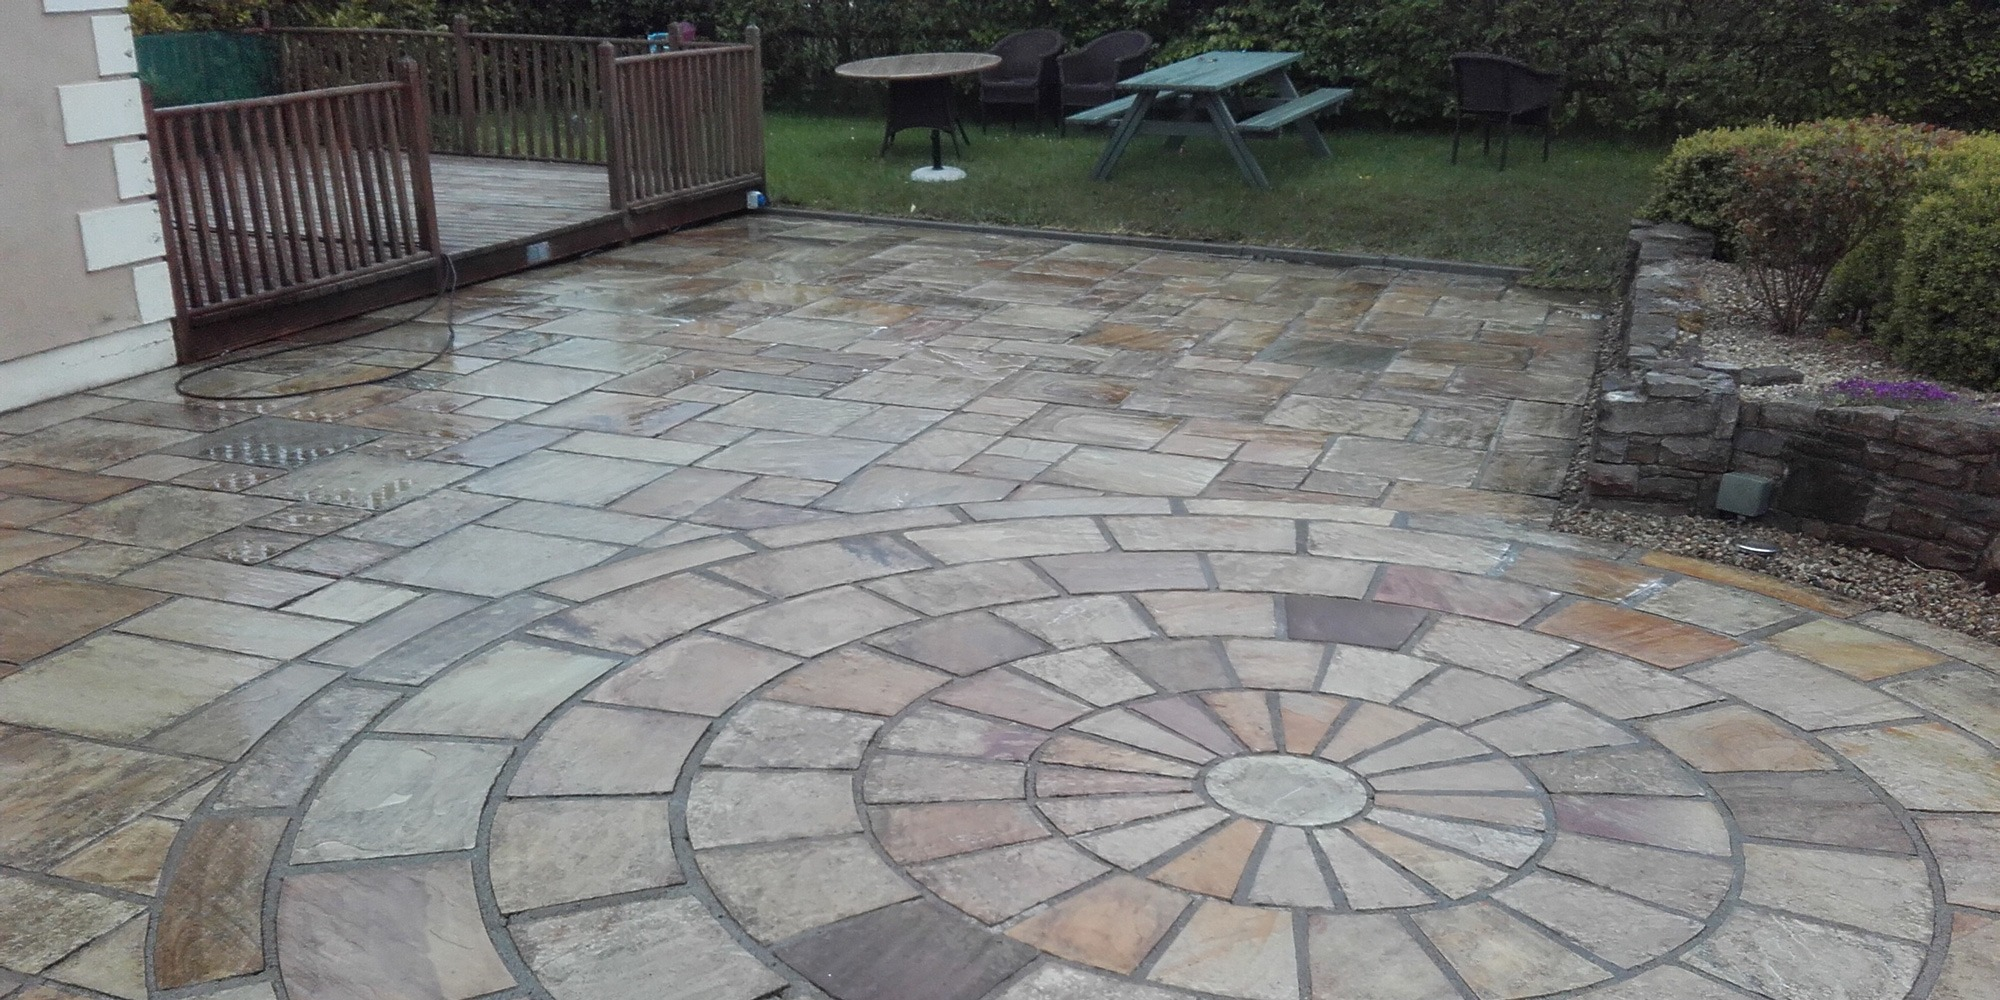 Patio-cleaning-service-Mayo,-Sligo,-Roscommon,-Galway-Ireland